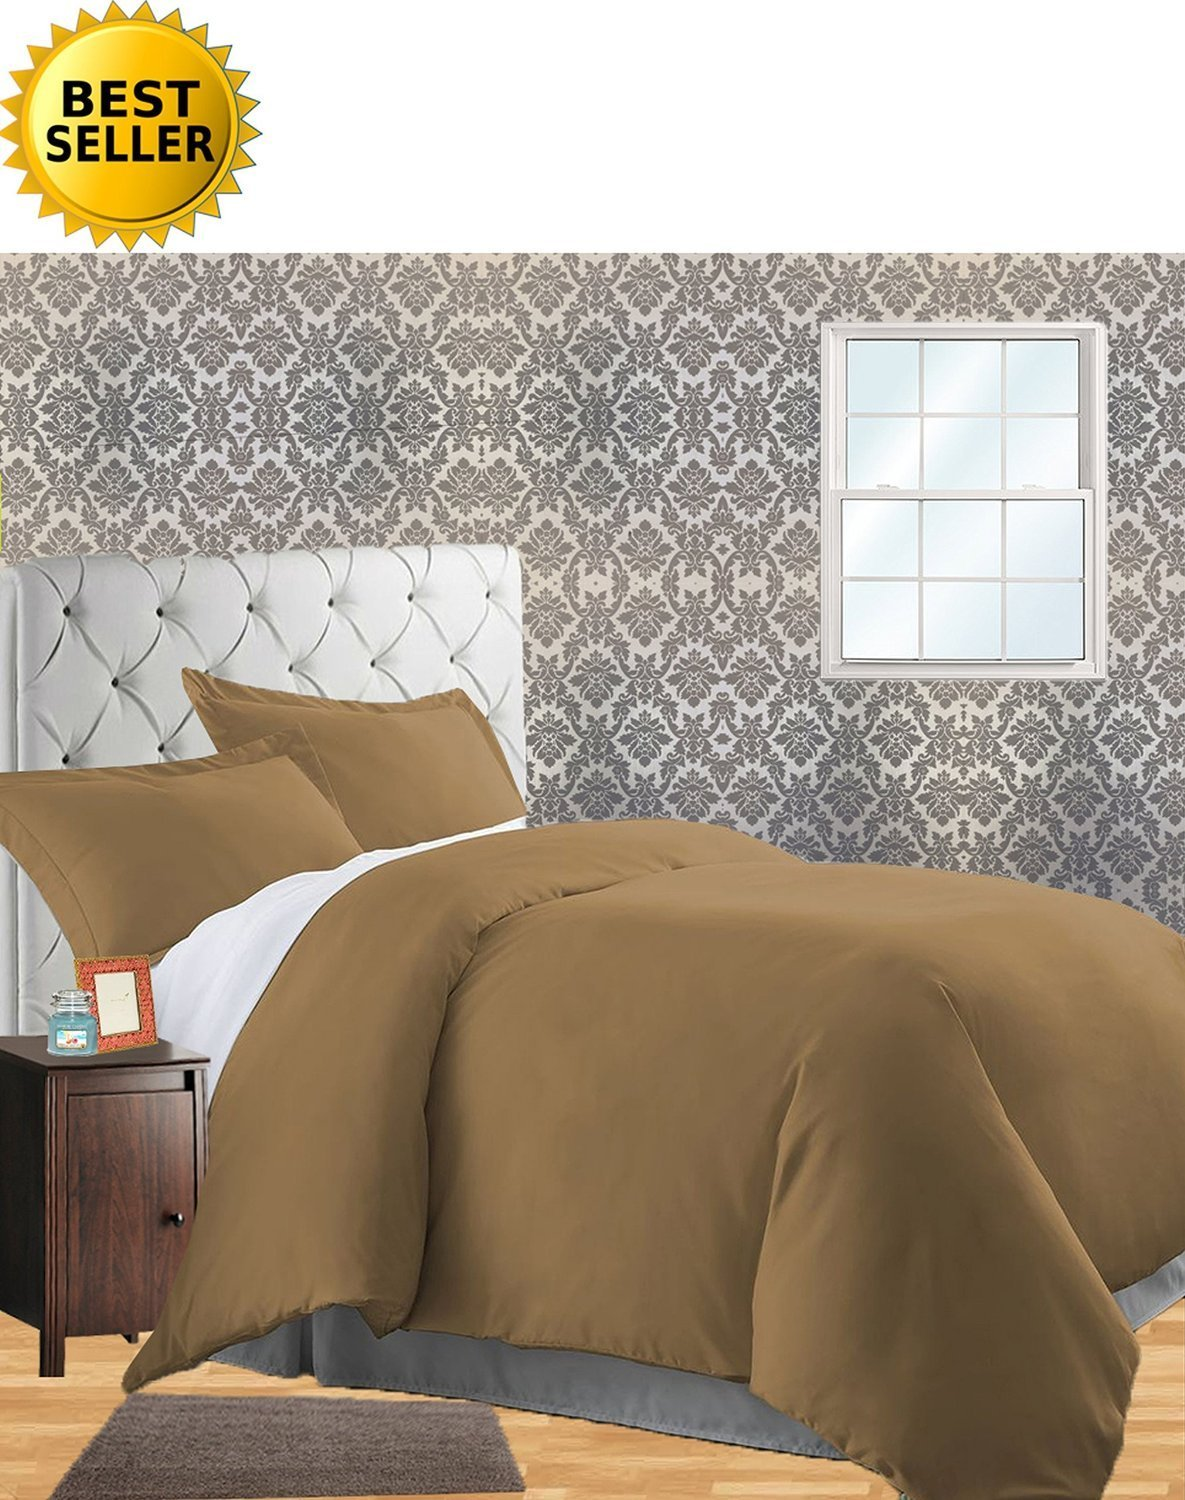 (King/California King, Mocha Chocolate) Celine Linen Wrinkle & Fade Resistant 3-Piece Duvet Cover Set Protects and Covers your Comforter / Duvet Insert, 1500 Series LUXURIOUS 100% HypoAllergenic Super Silky Soft, King/Cali King, Mocha Chocolate B01F0I3JR2 King/California King|モカチョコレート モカチョコレート King/California King